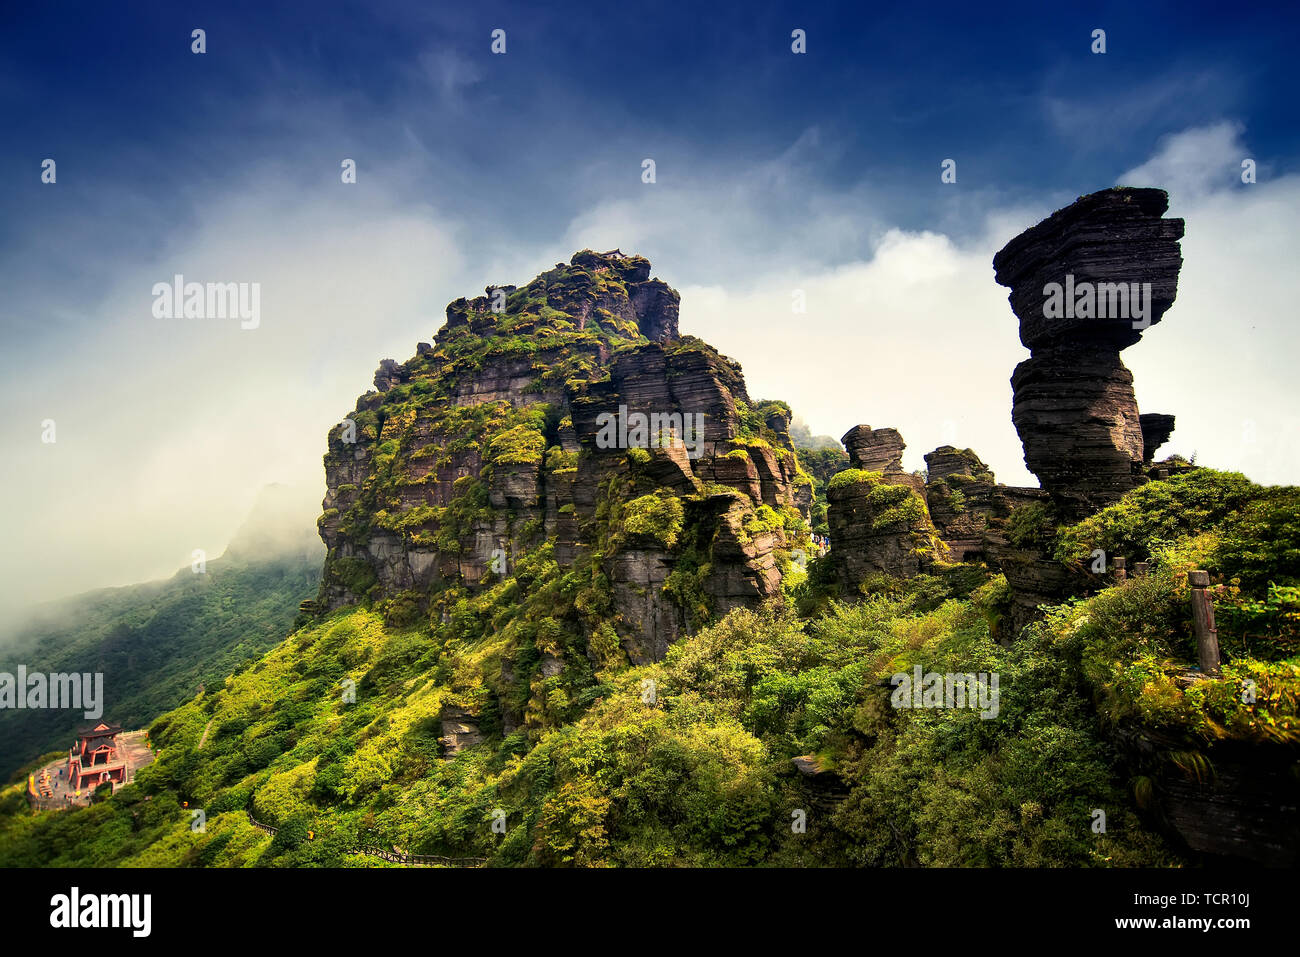 Unique geological landform - mount fanjing in guizhou province,China Stock Photo